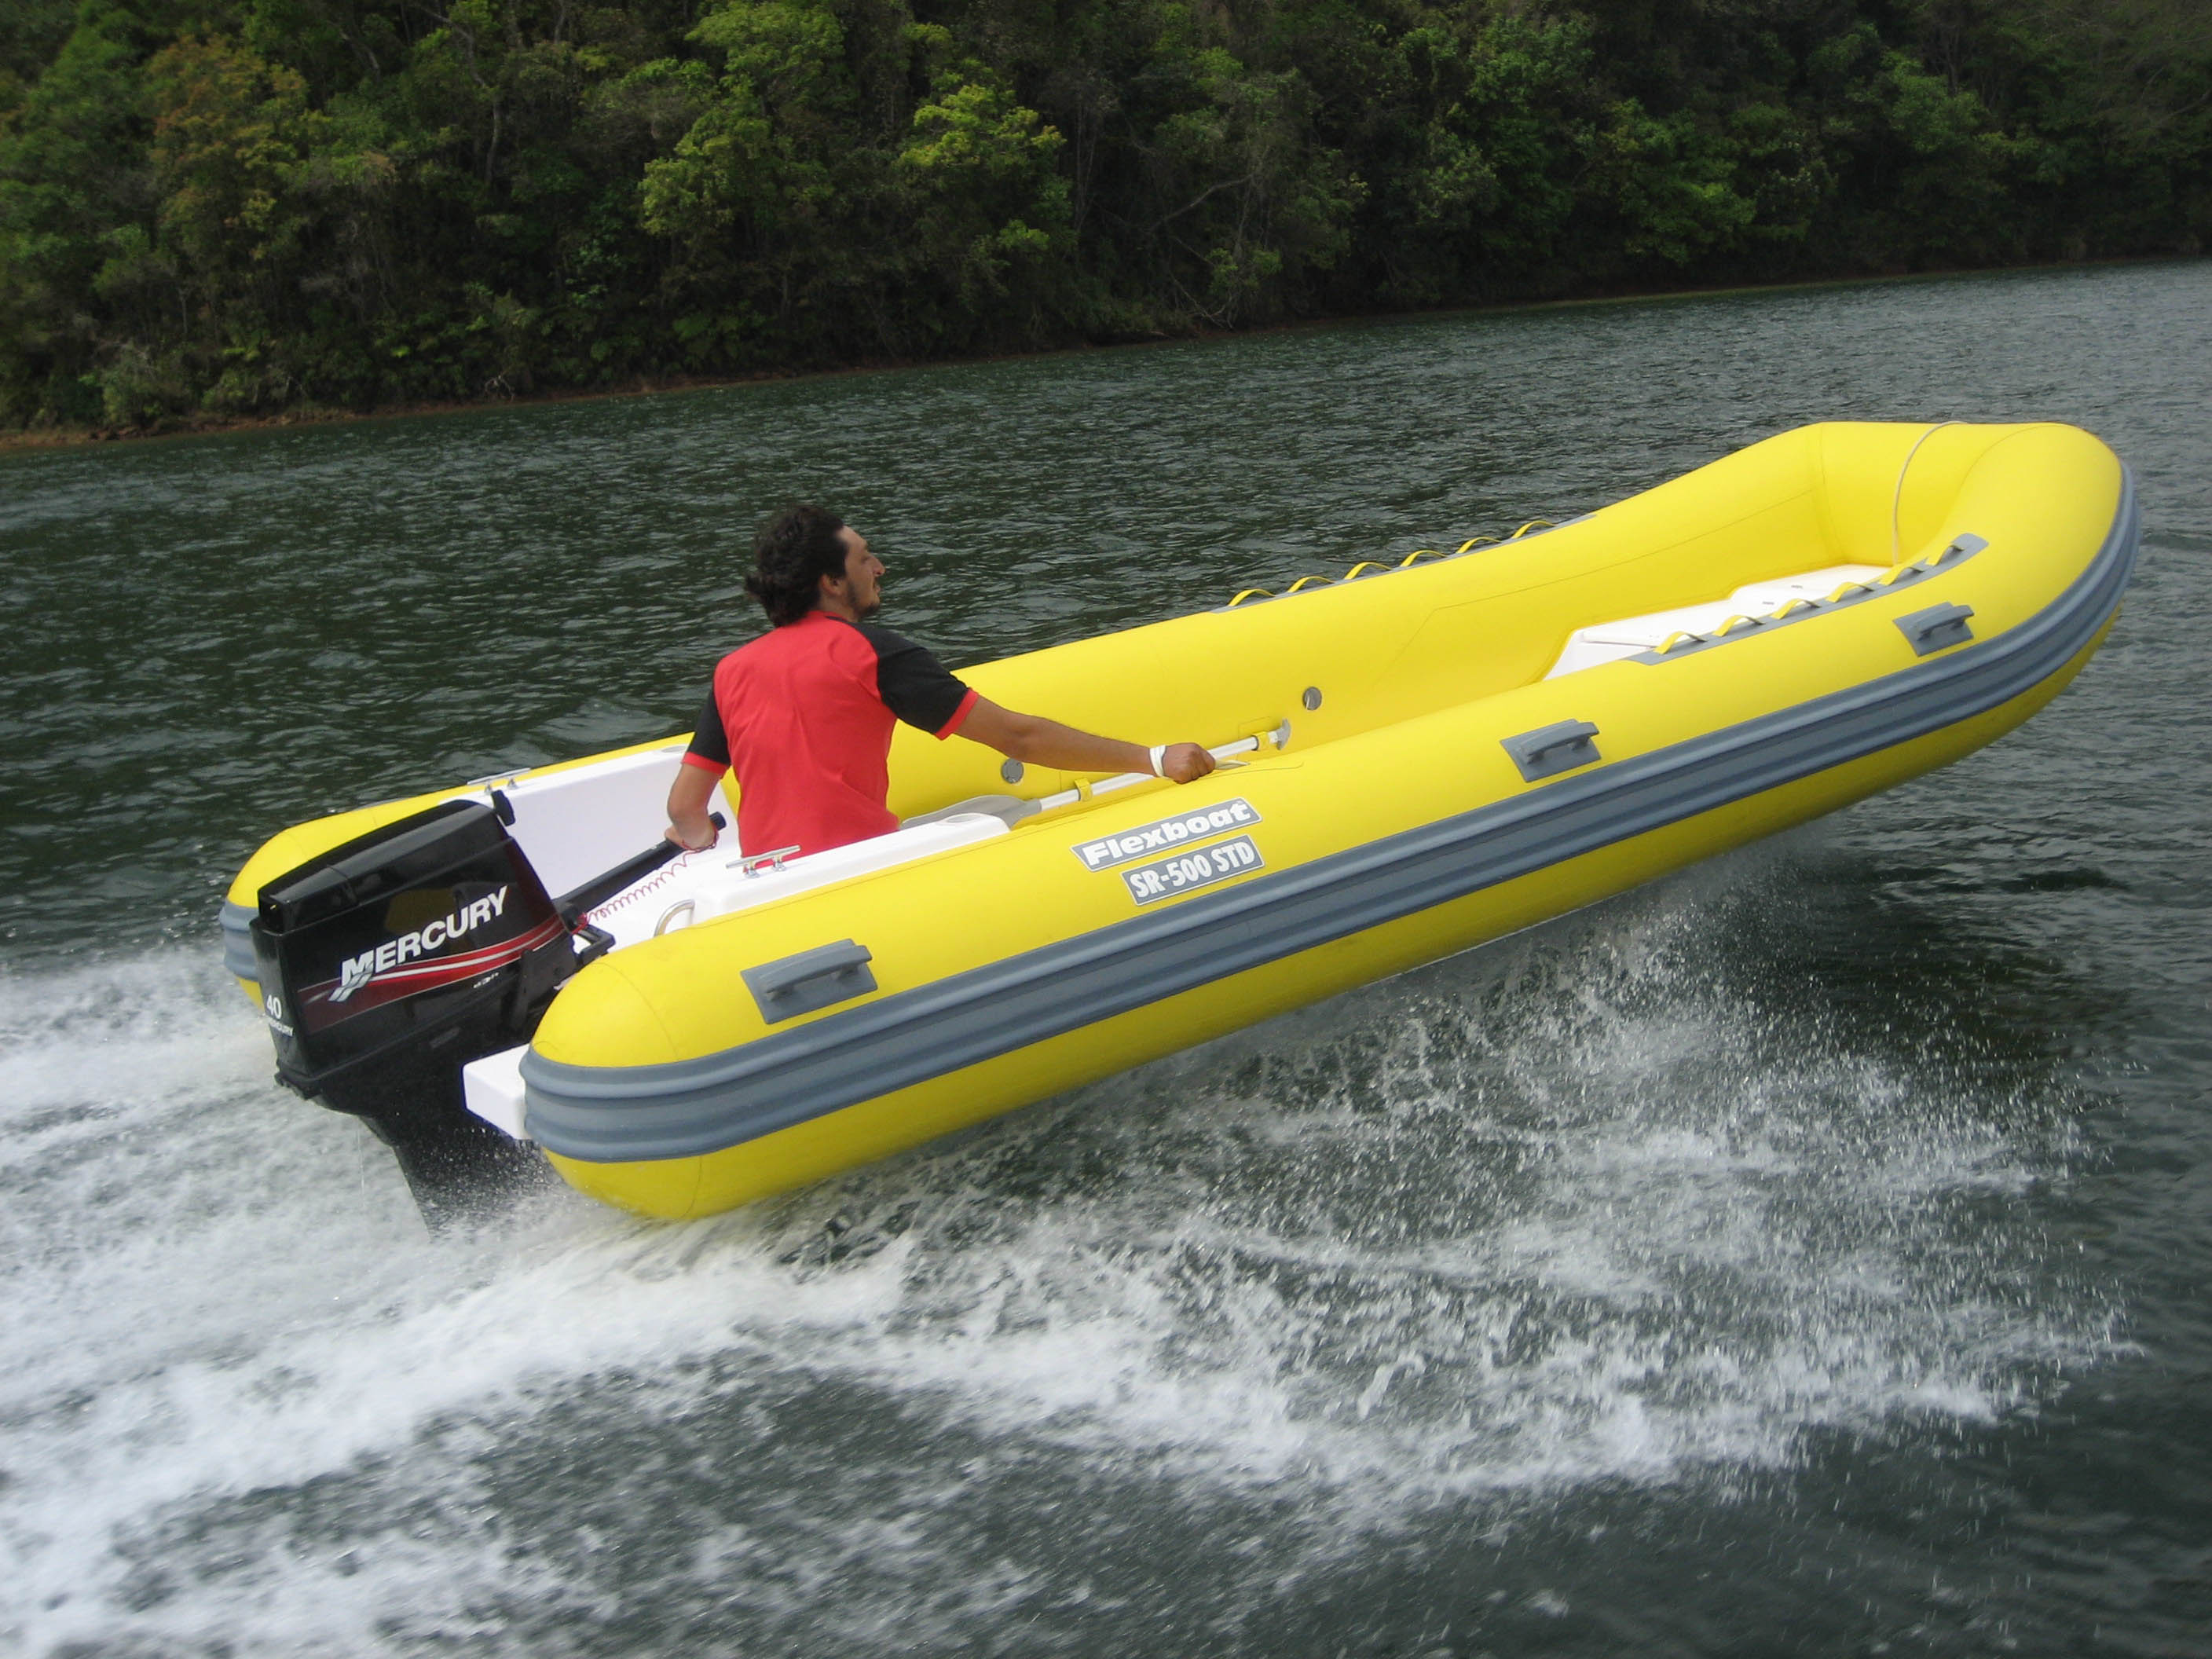 Flexboat SR 500 GII Standard